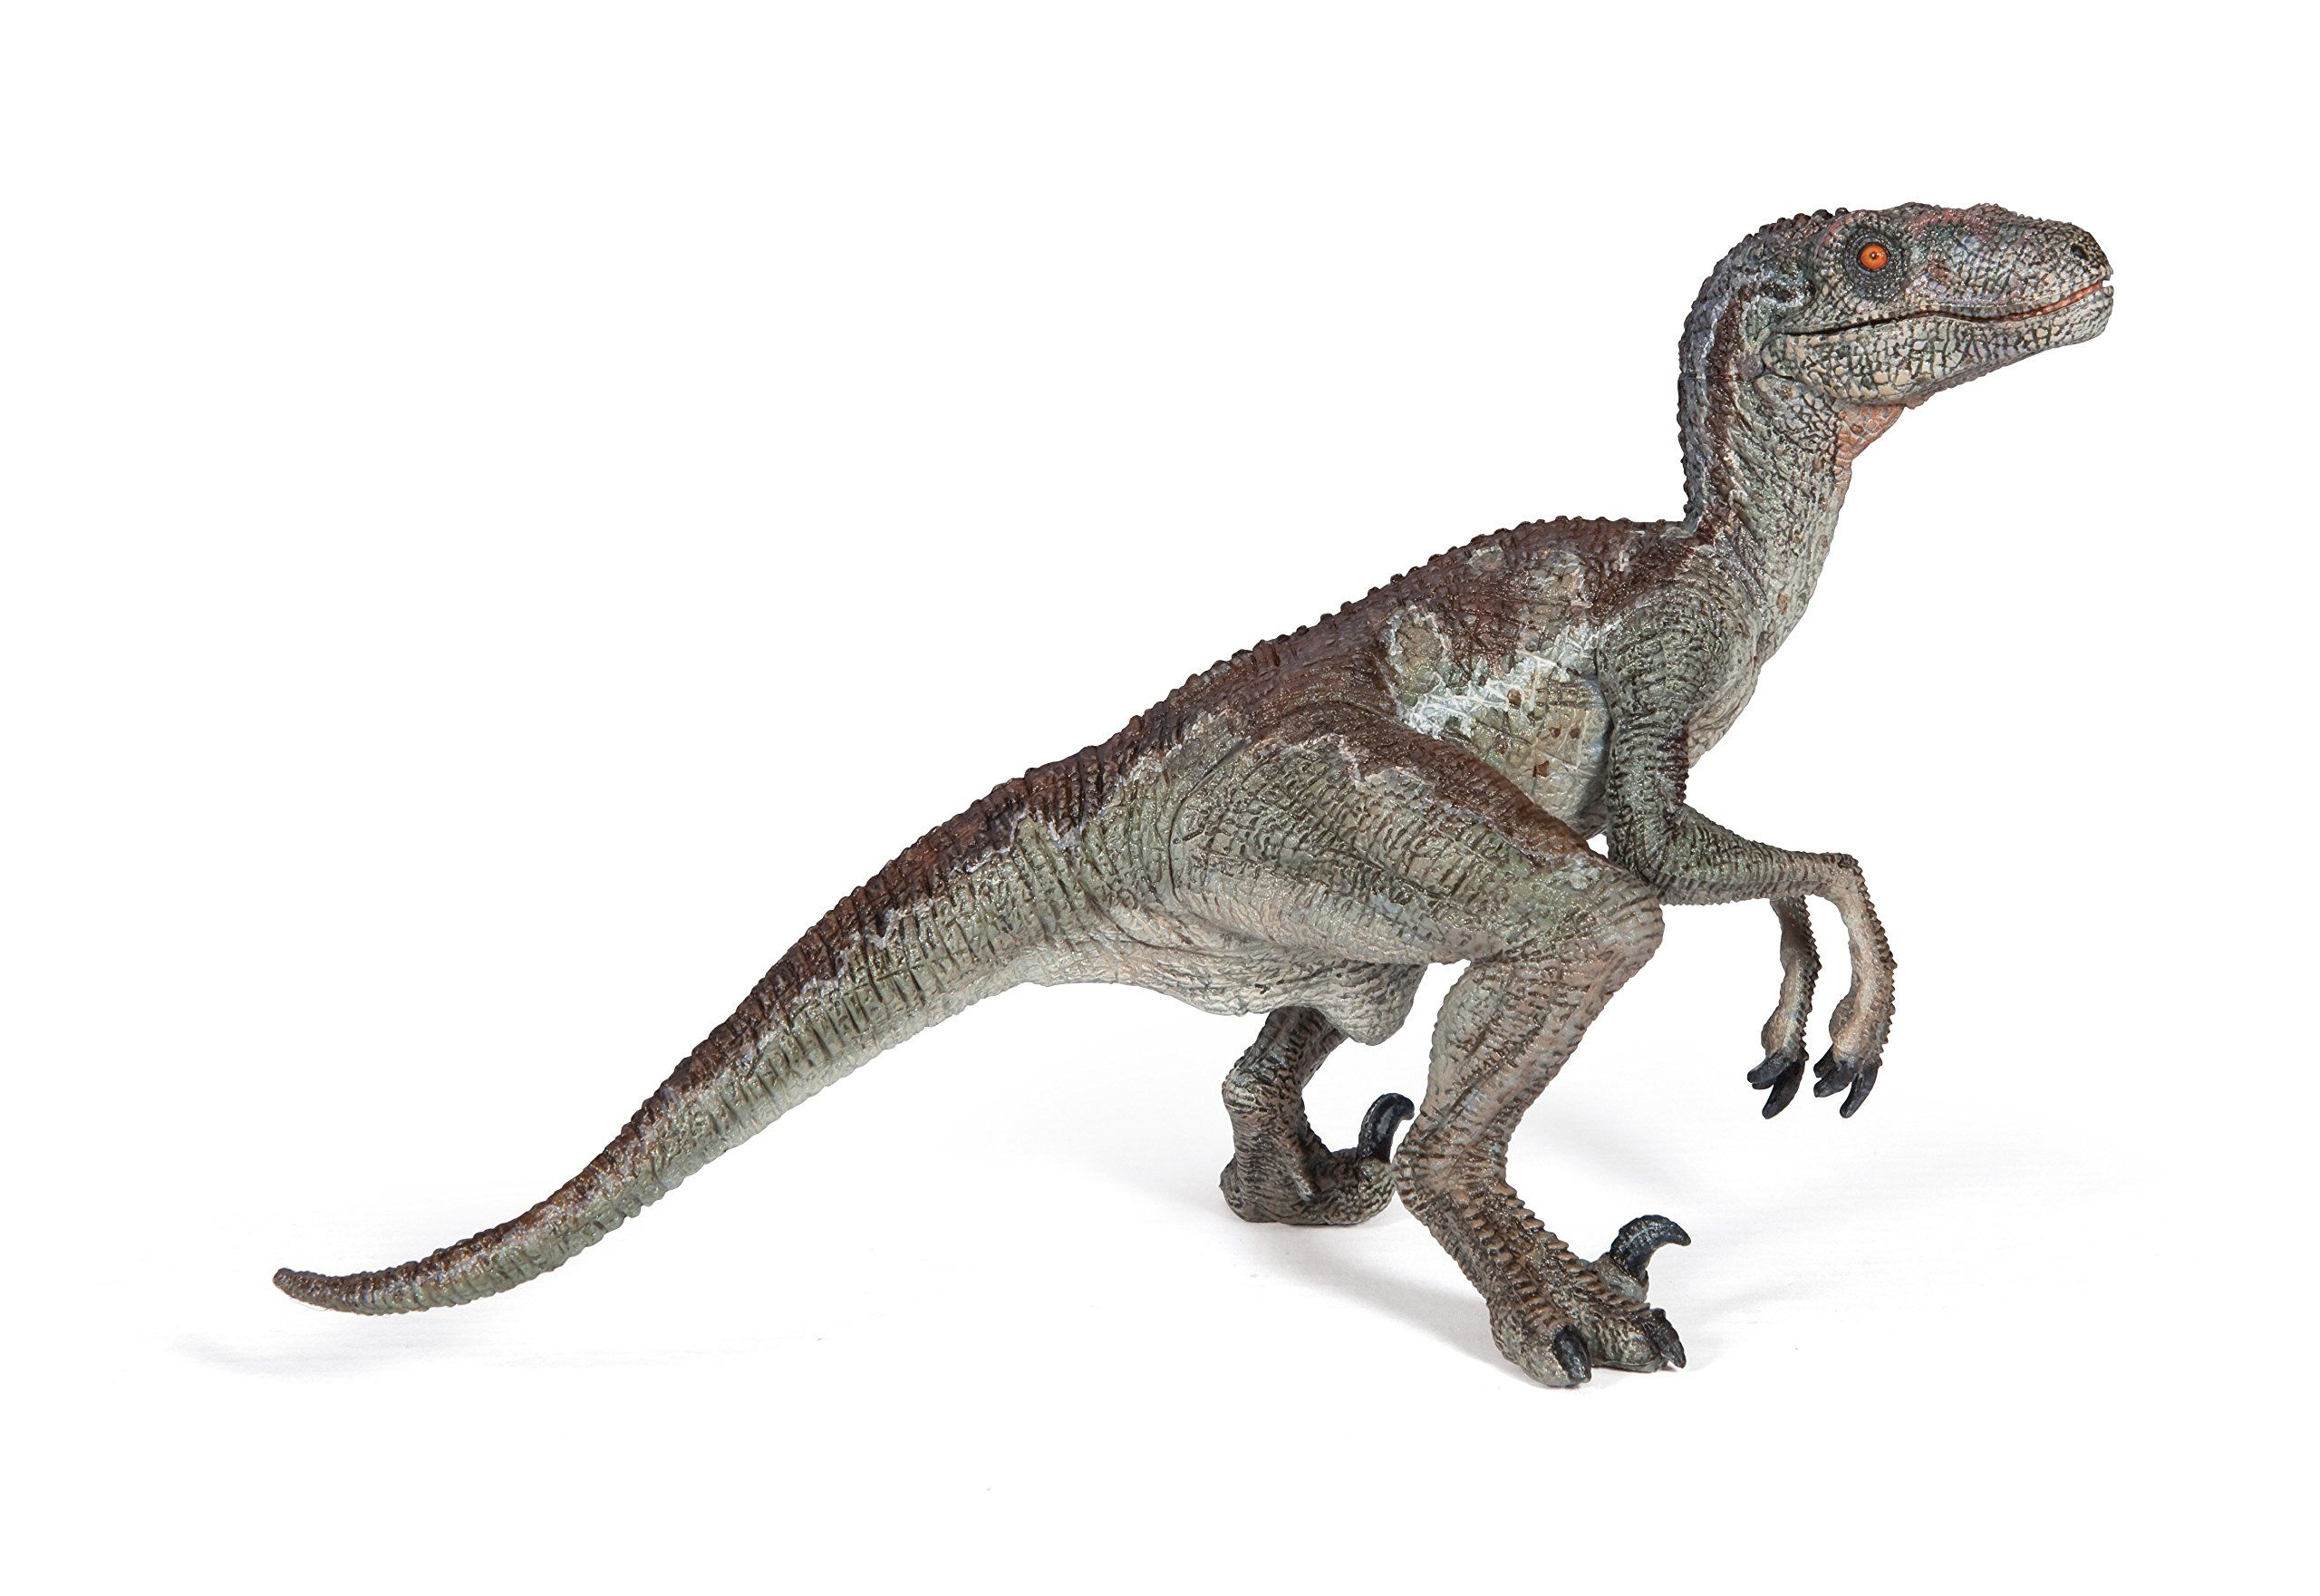 Papo The Dinosaur Figure, Velociraptor (With images